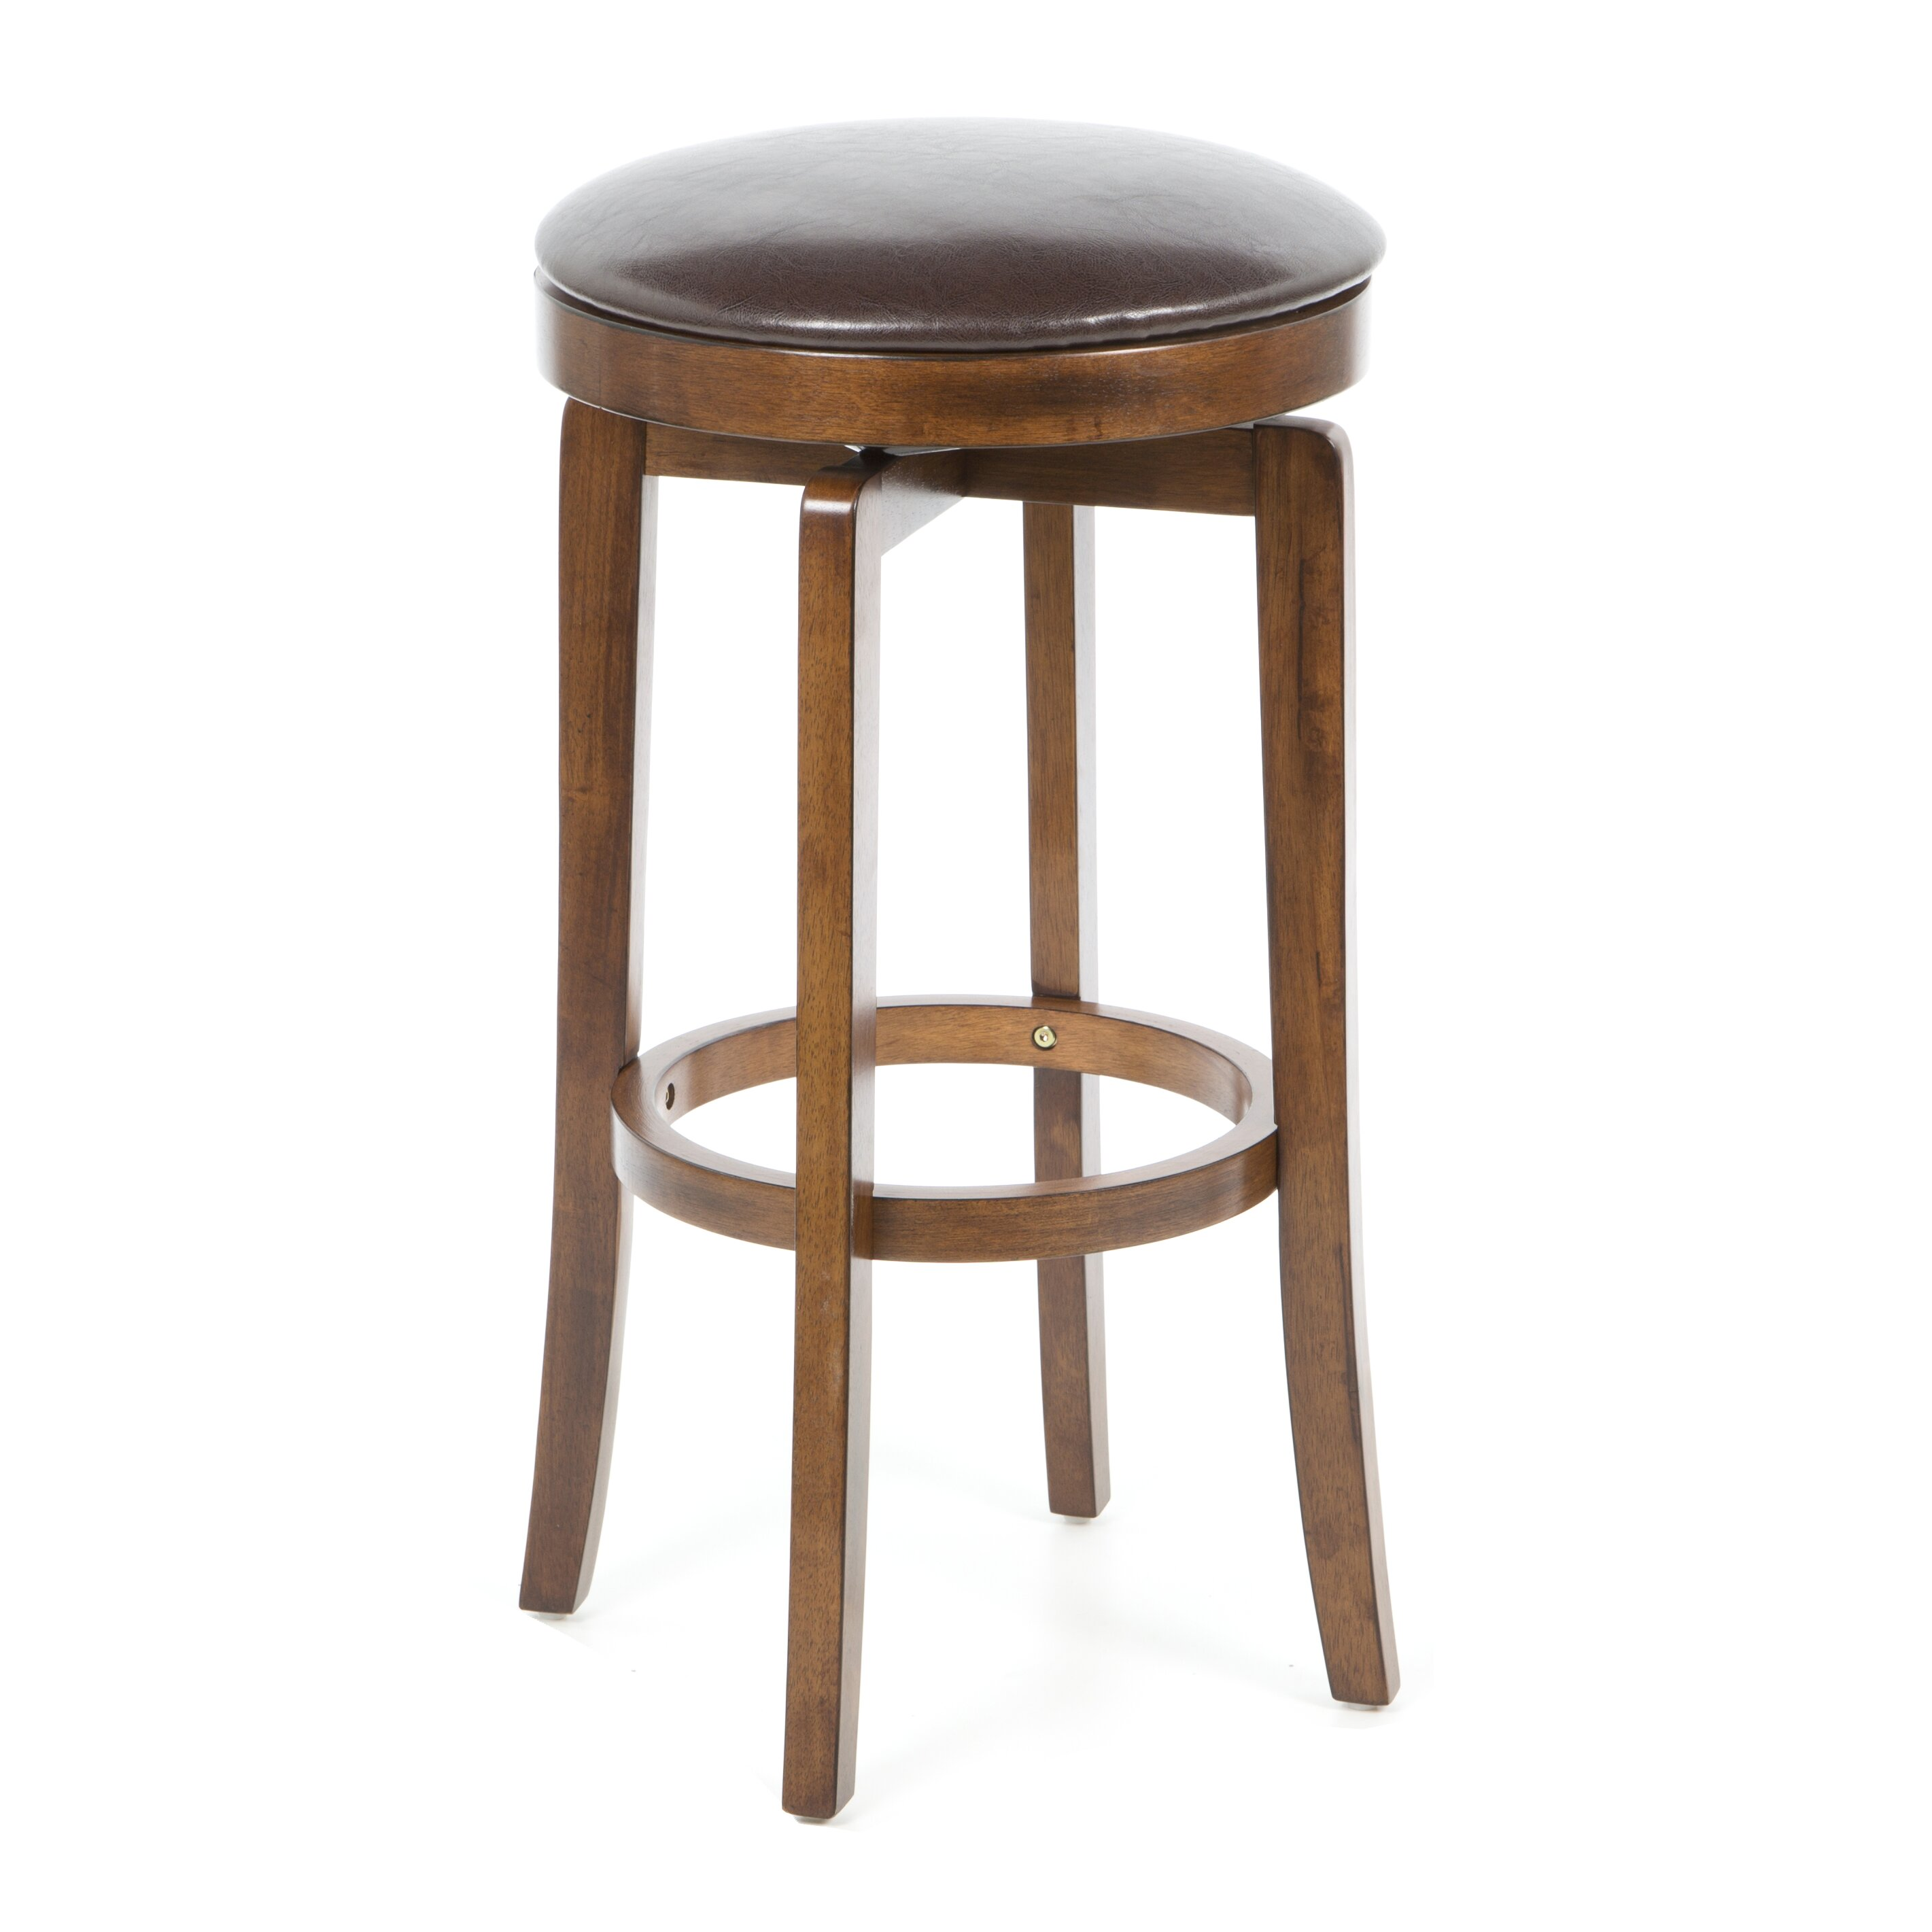 Latitude Run Lori 31quot Swivel Bar Stool amp Reviews Wayfair : Brendan2BBackless2BBar2BStool2Bin2BBrown2BCherry from www.wayfair.com size 2842 x 2842 jpeg 514kB